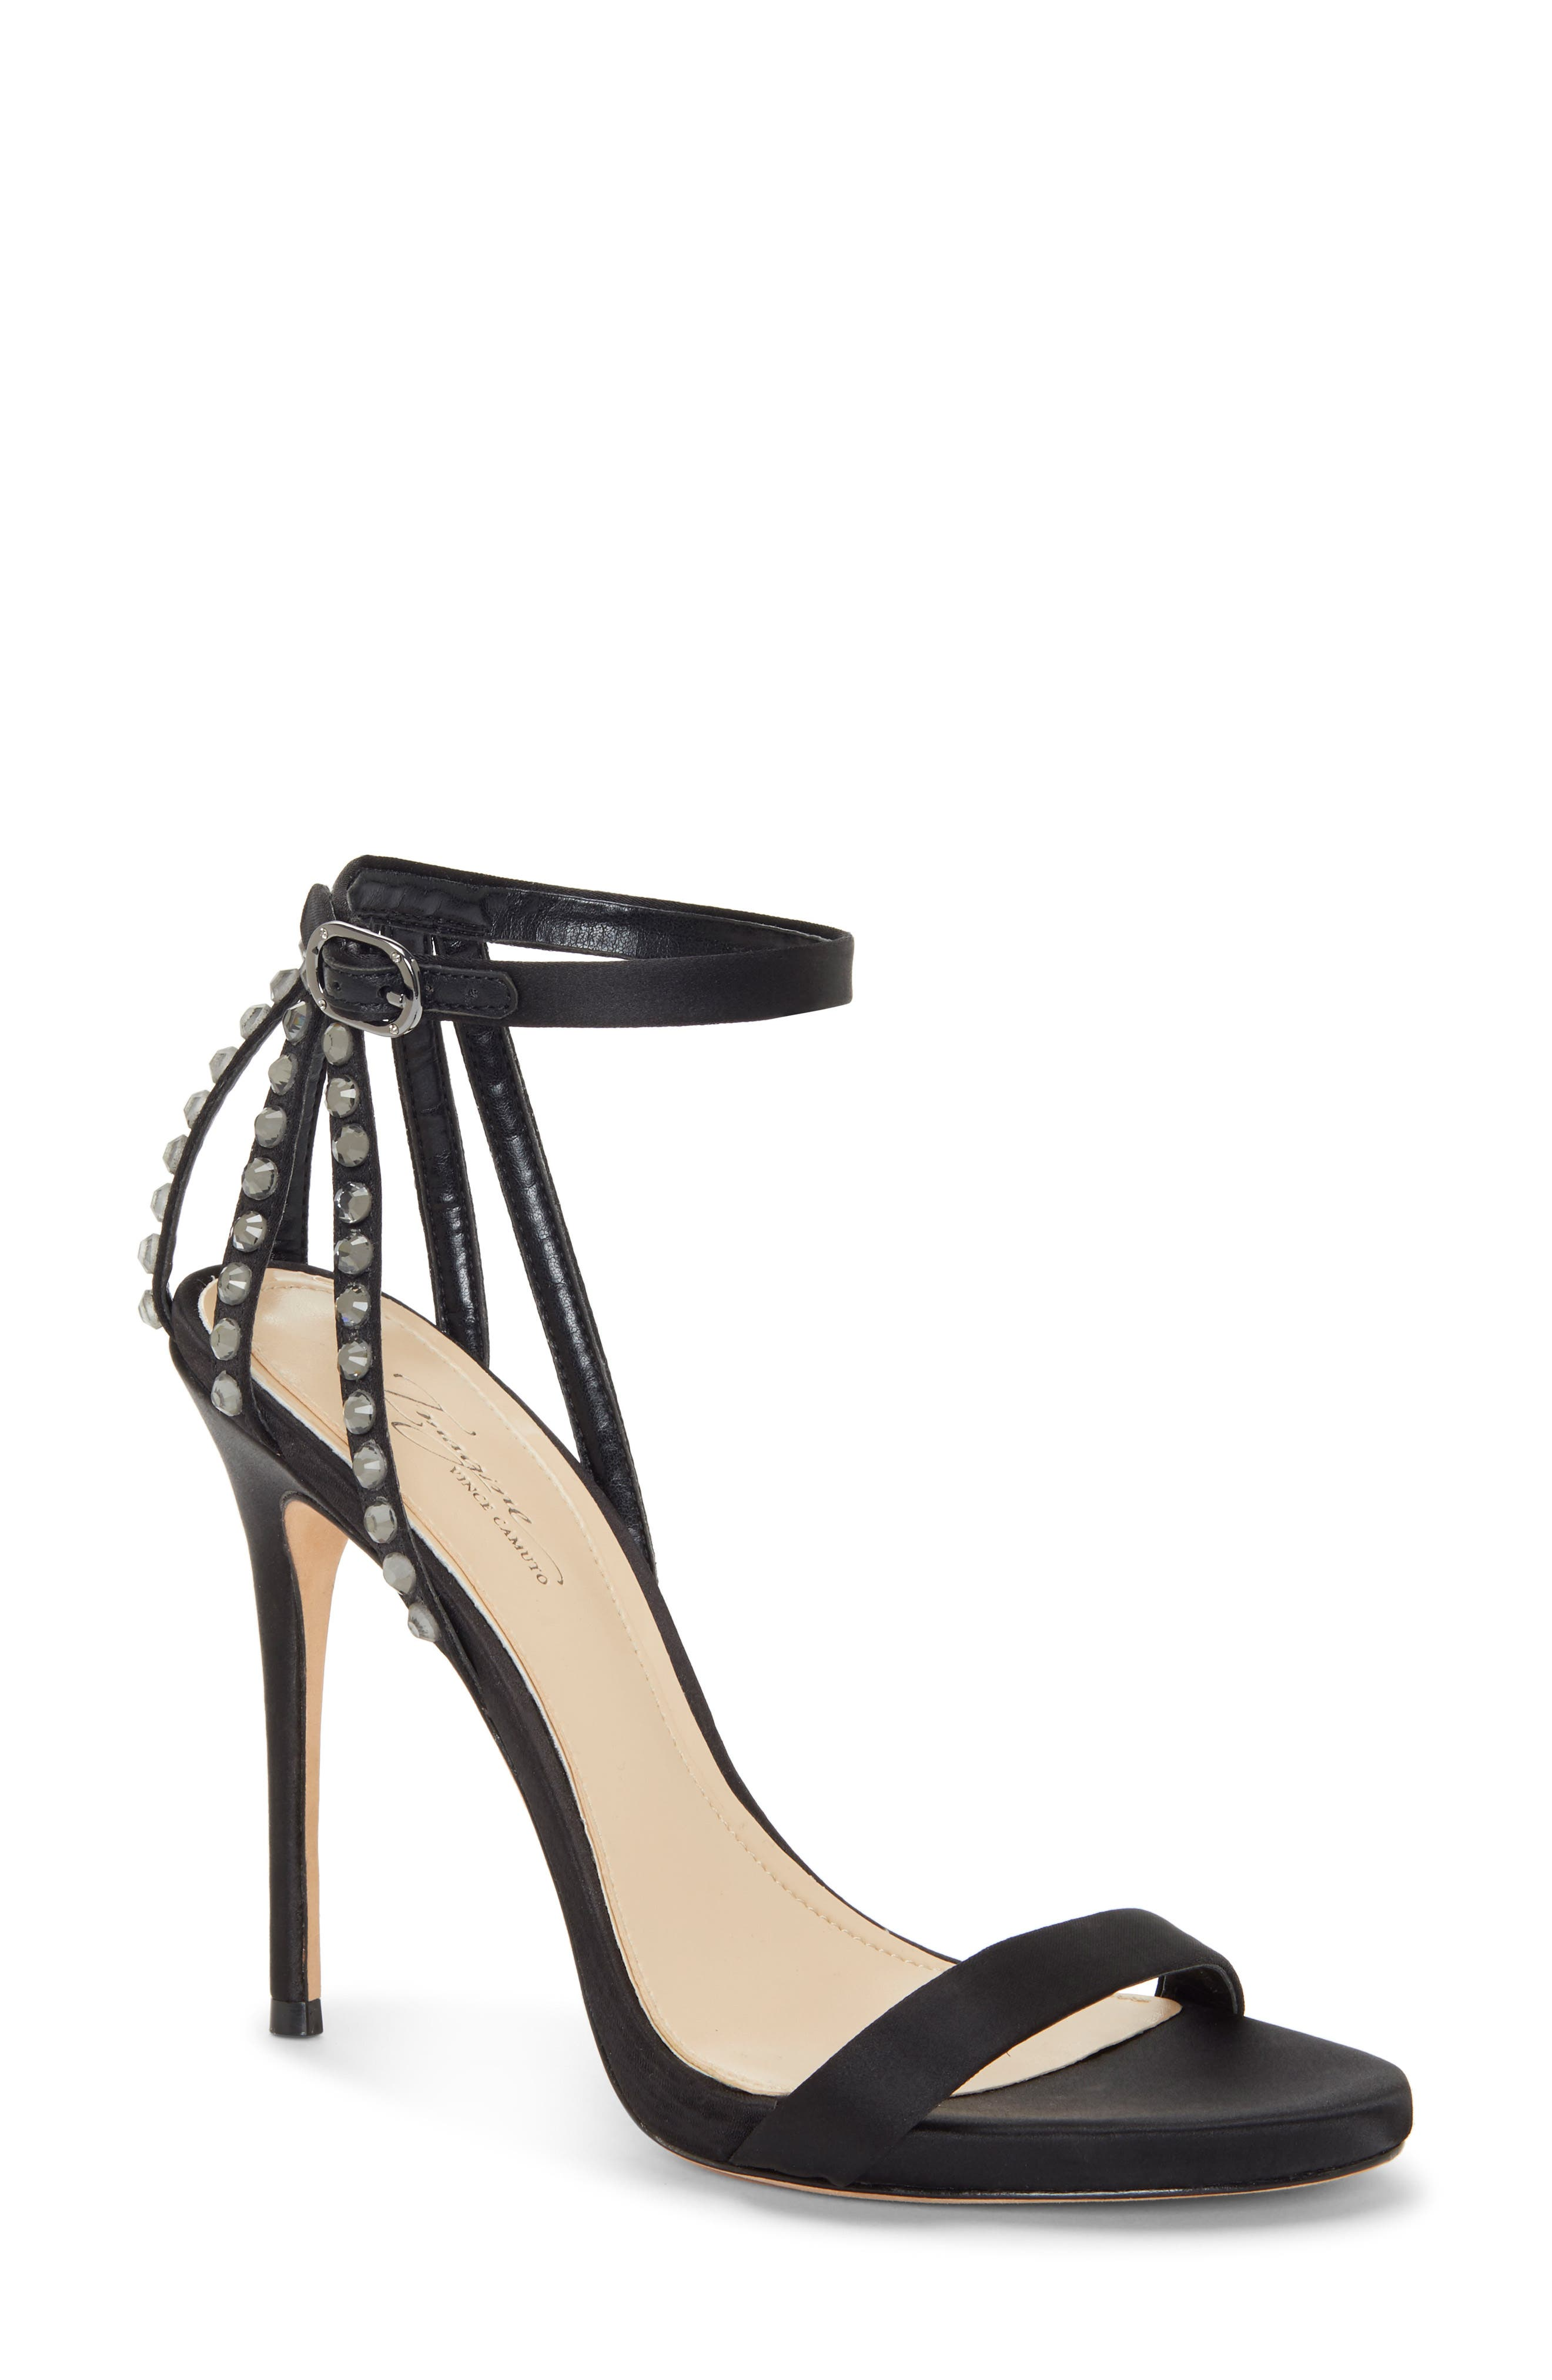 IMAGINE BY VINCE CAMUTO Daphee Crystal Embellished Sandal, Main, color, BLACK SATIN